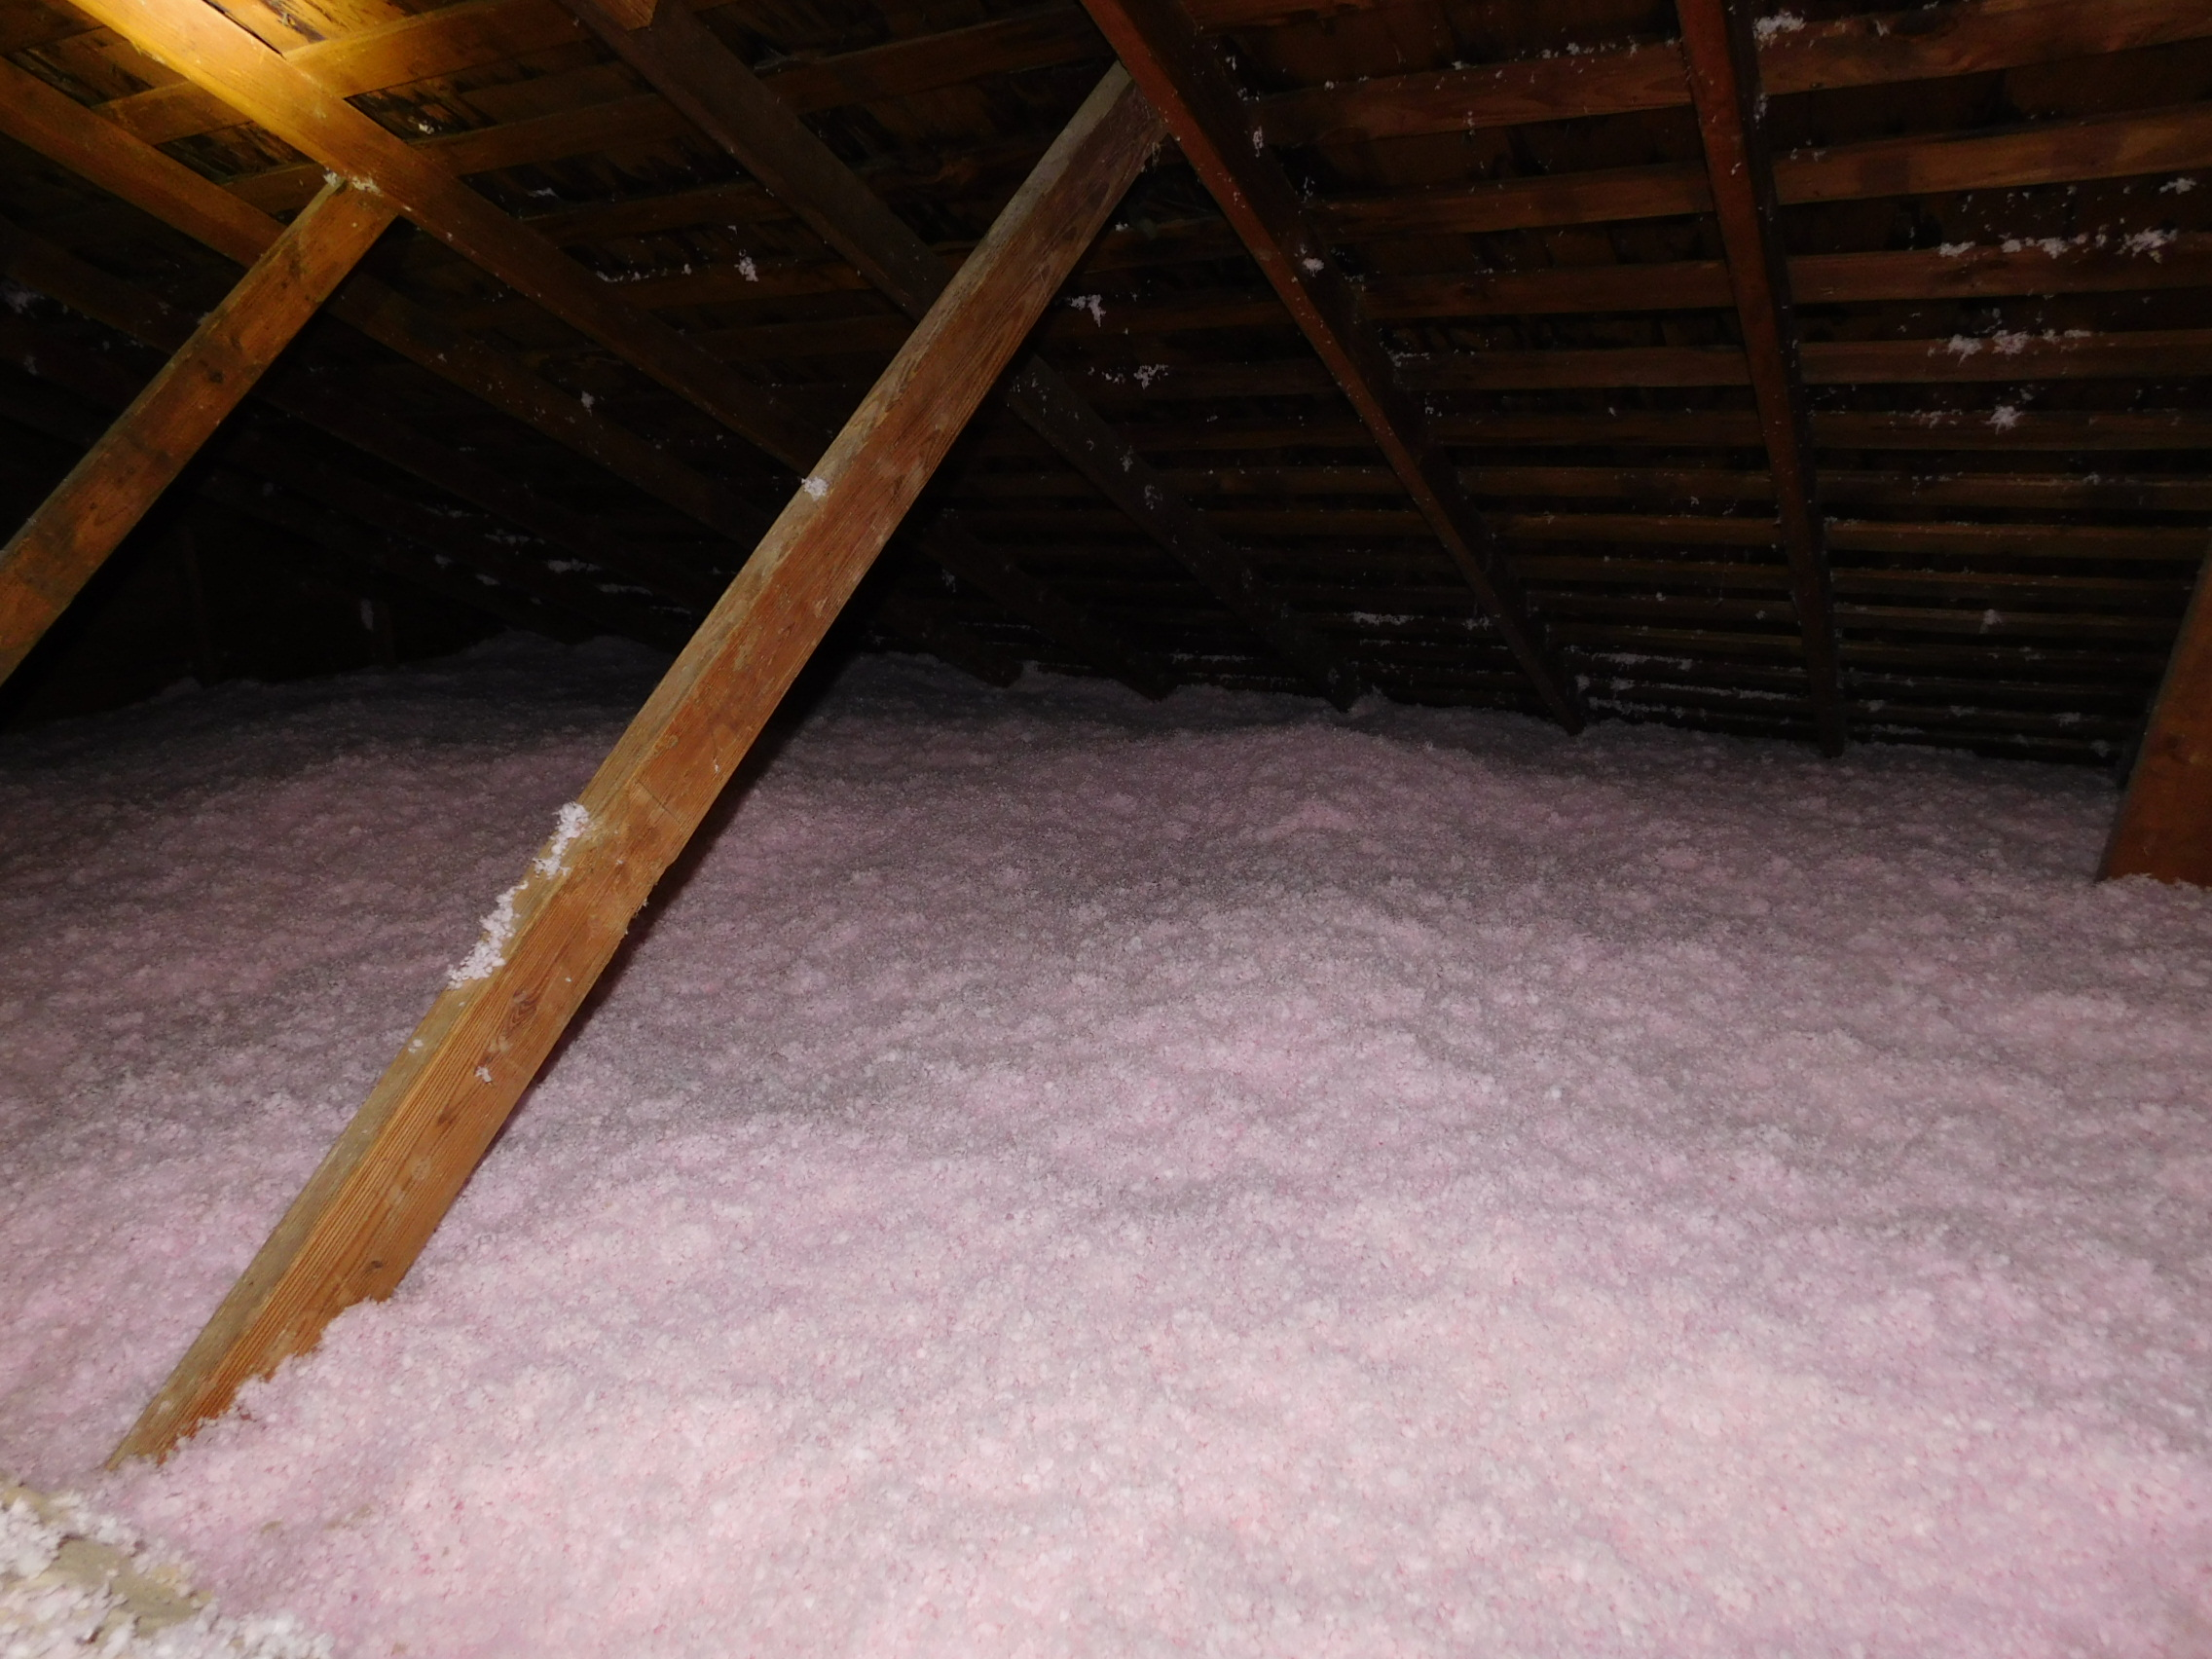 How to insulate attic